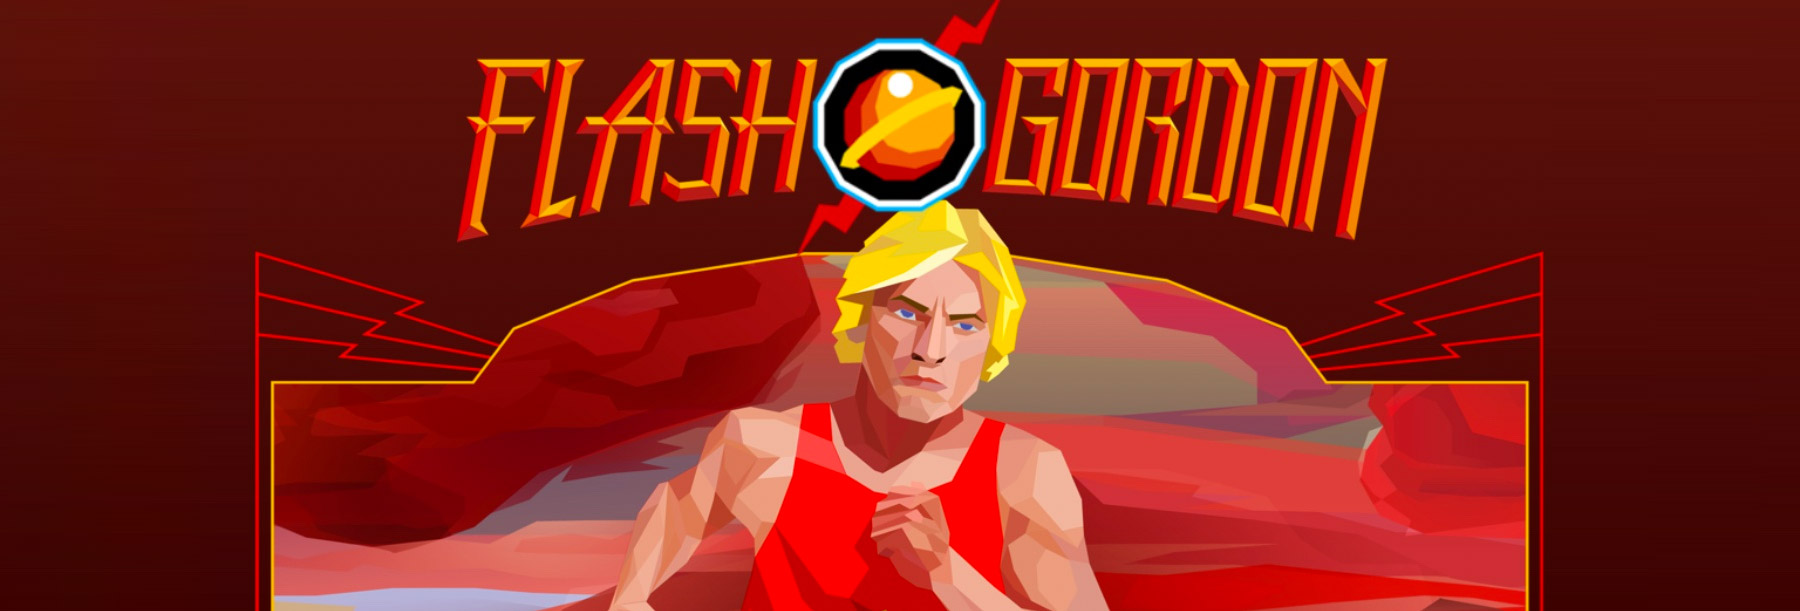 The fall of flash